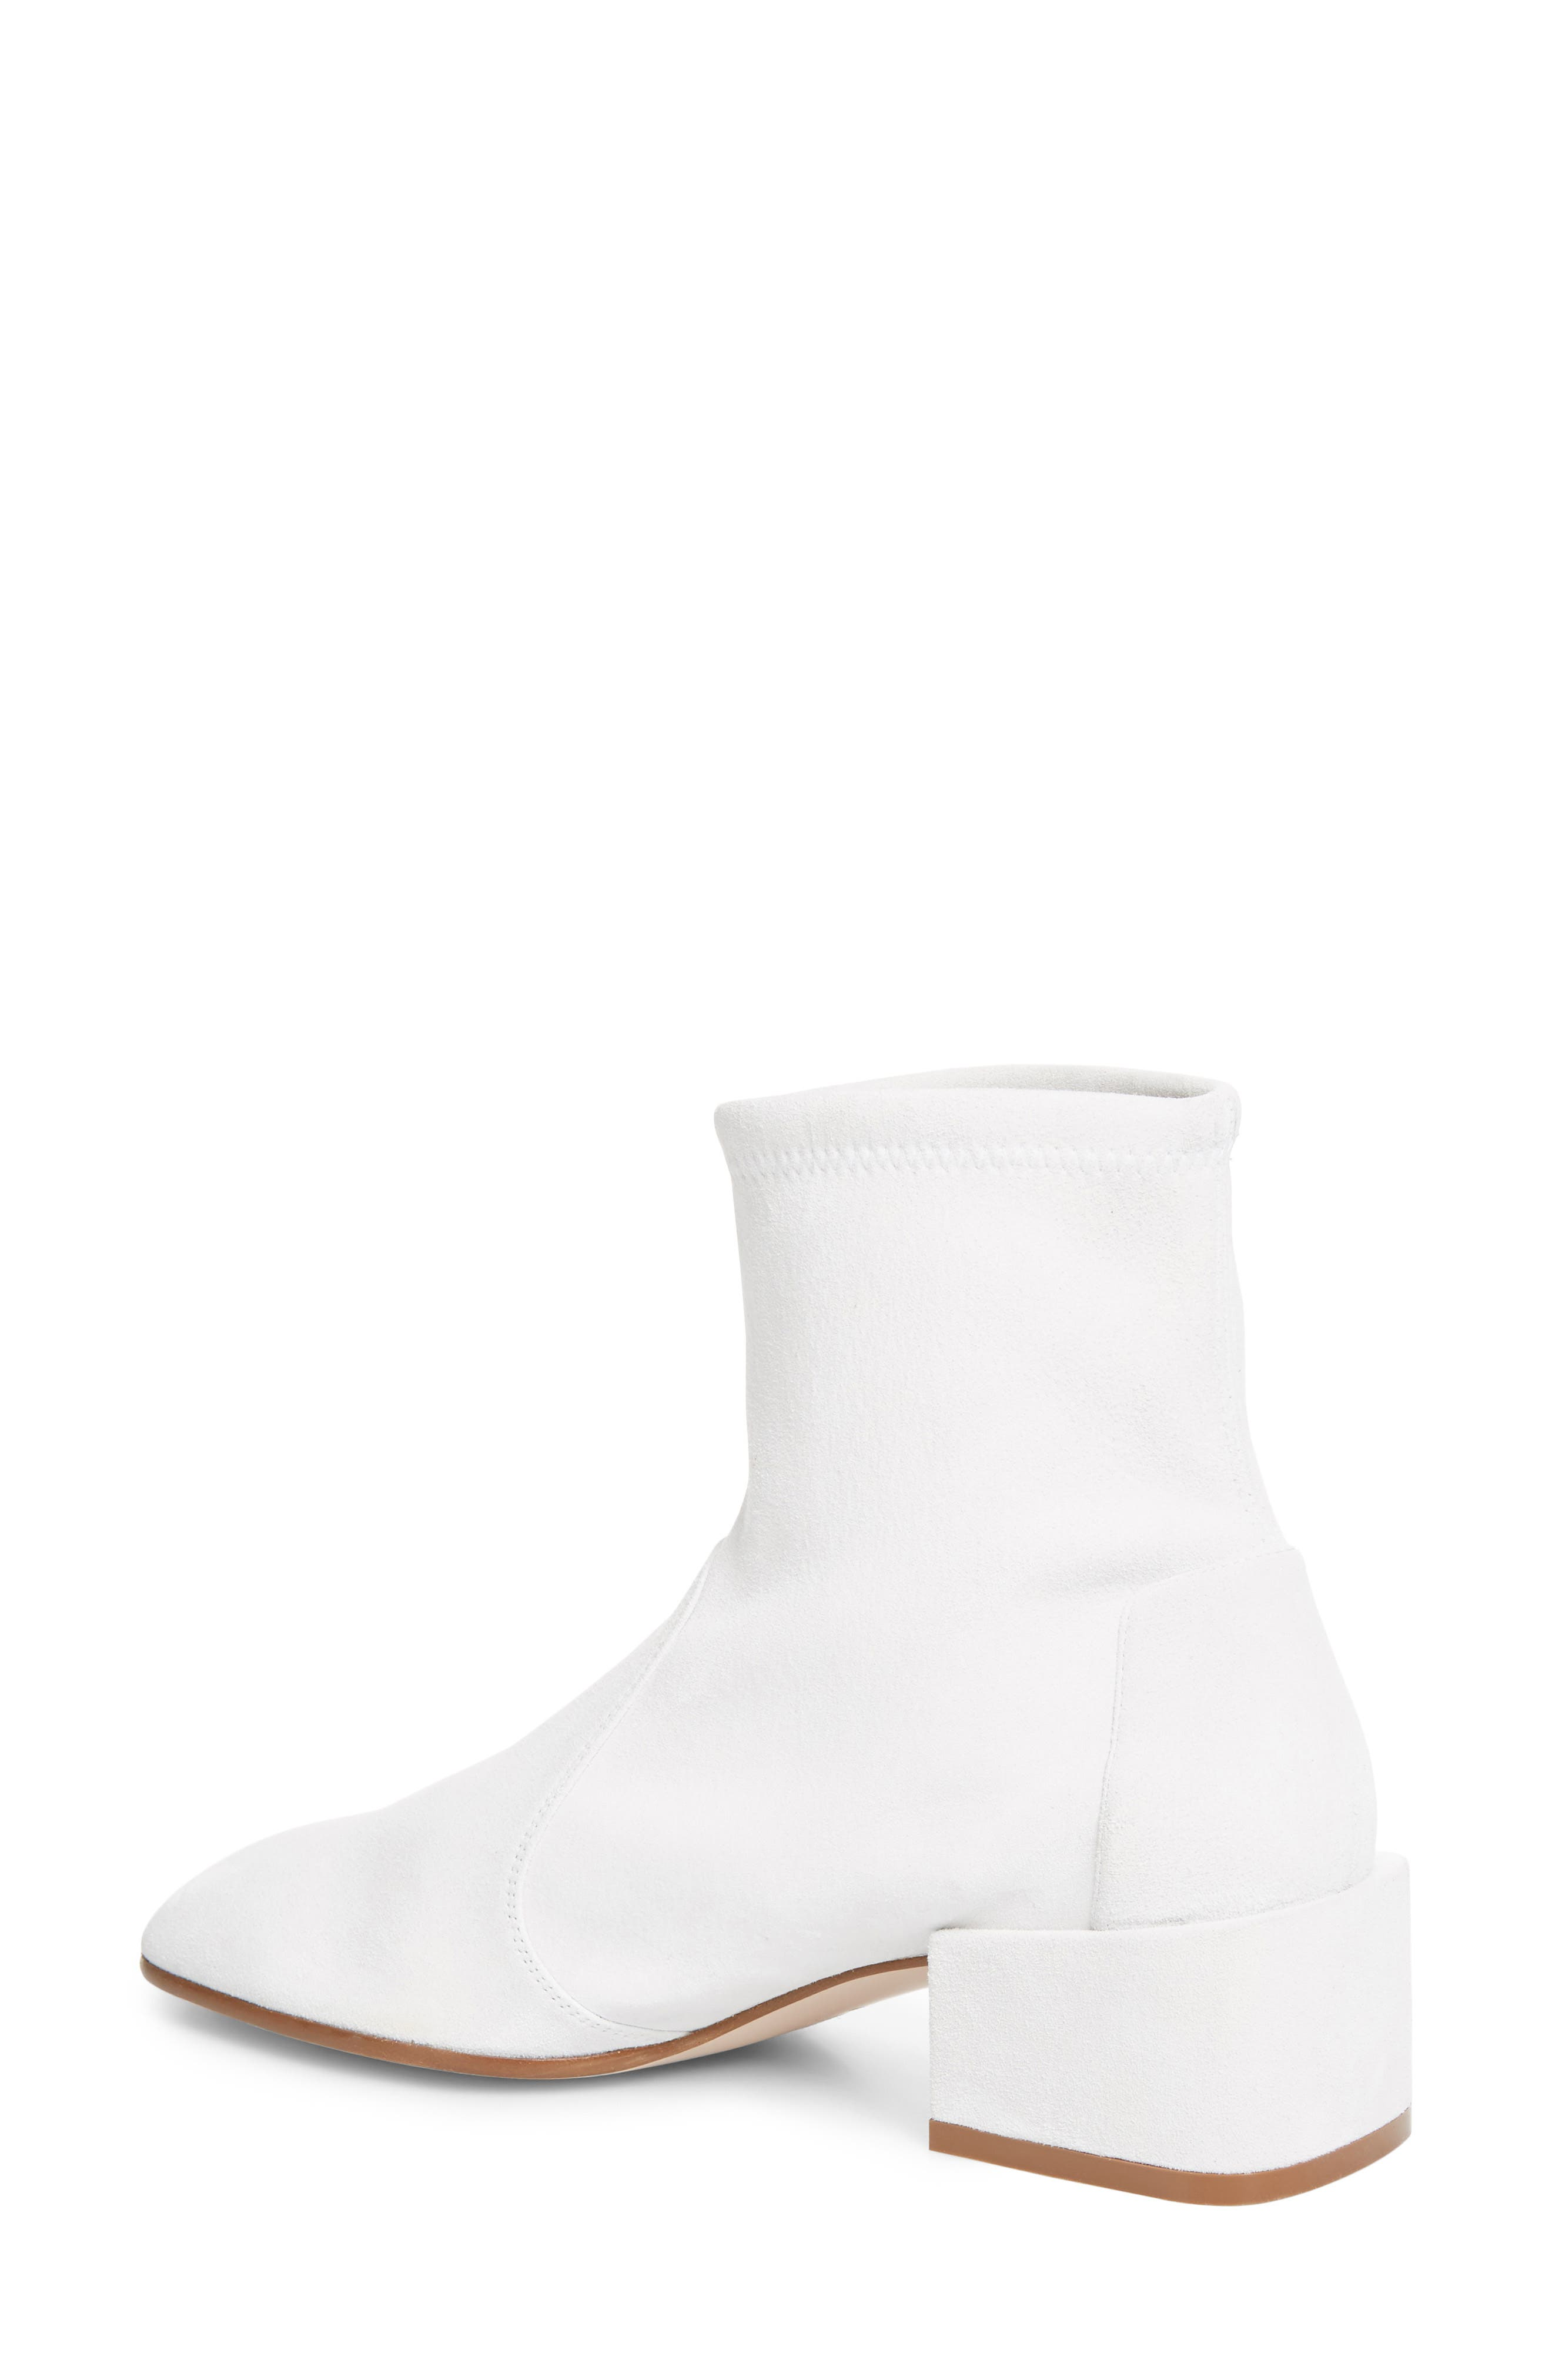 Accordion Bootie,                             Alternate thumbnail 2, color,                             Off White Seda Suede